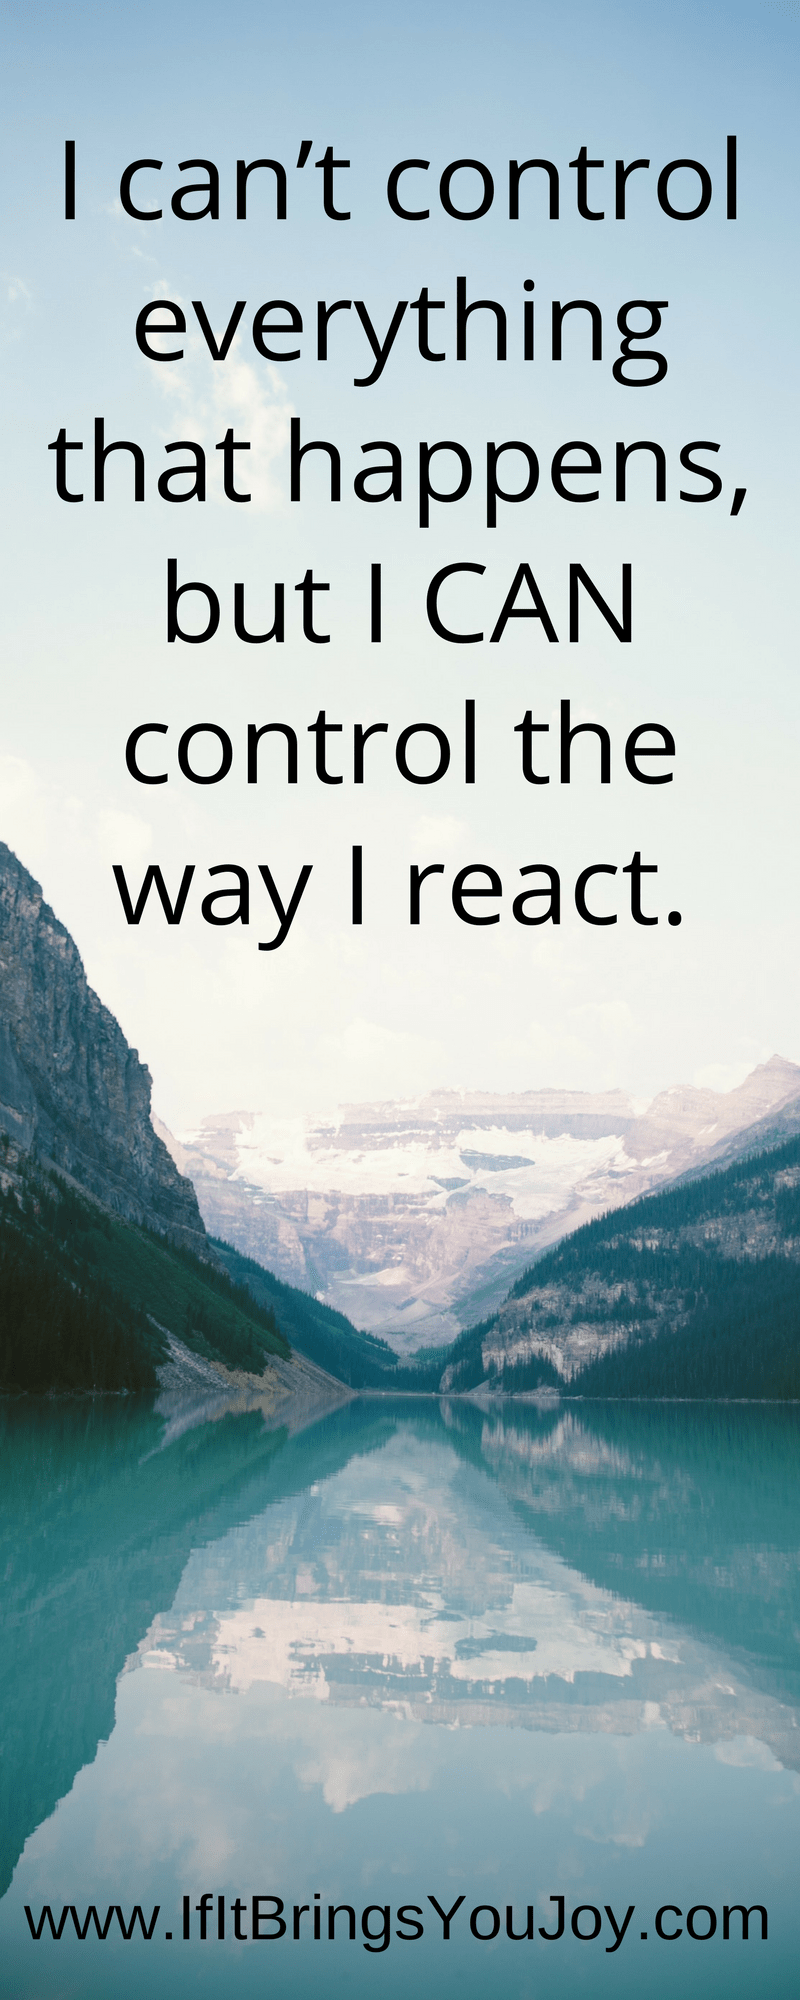 I CAN control the way I act